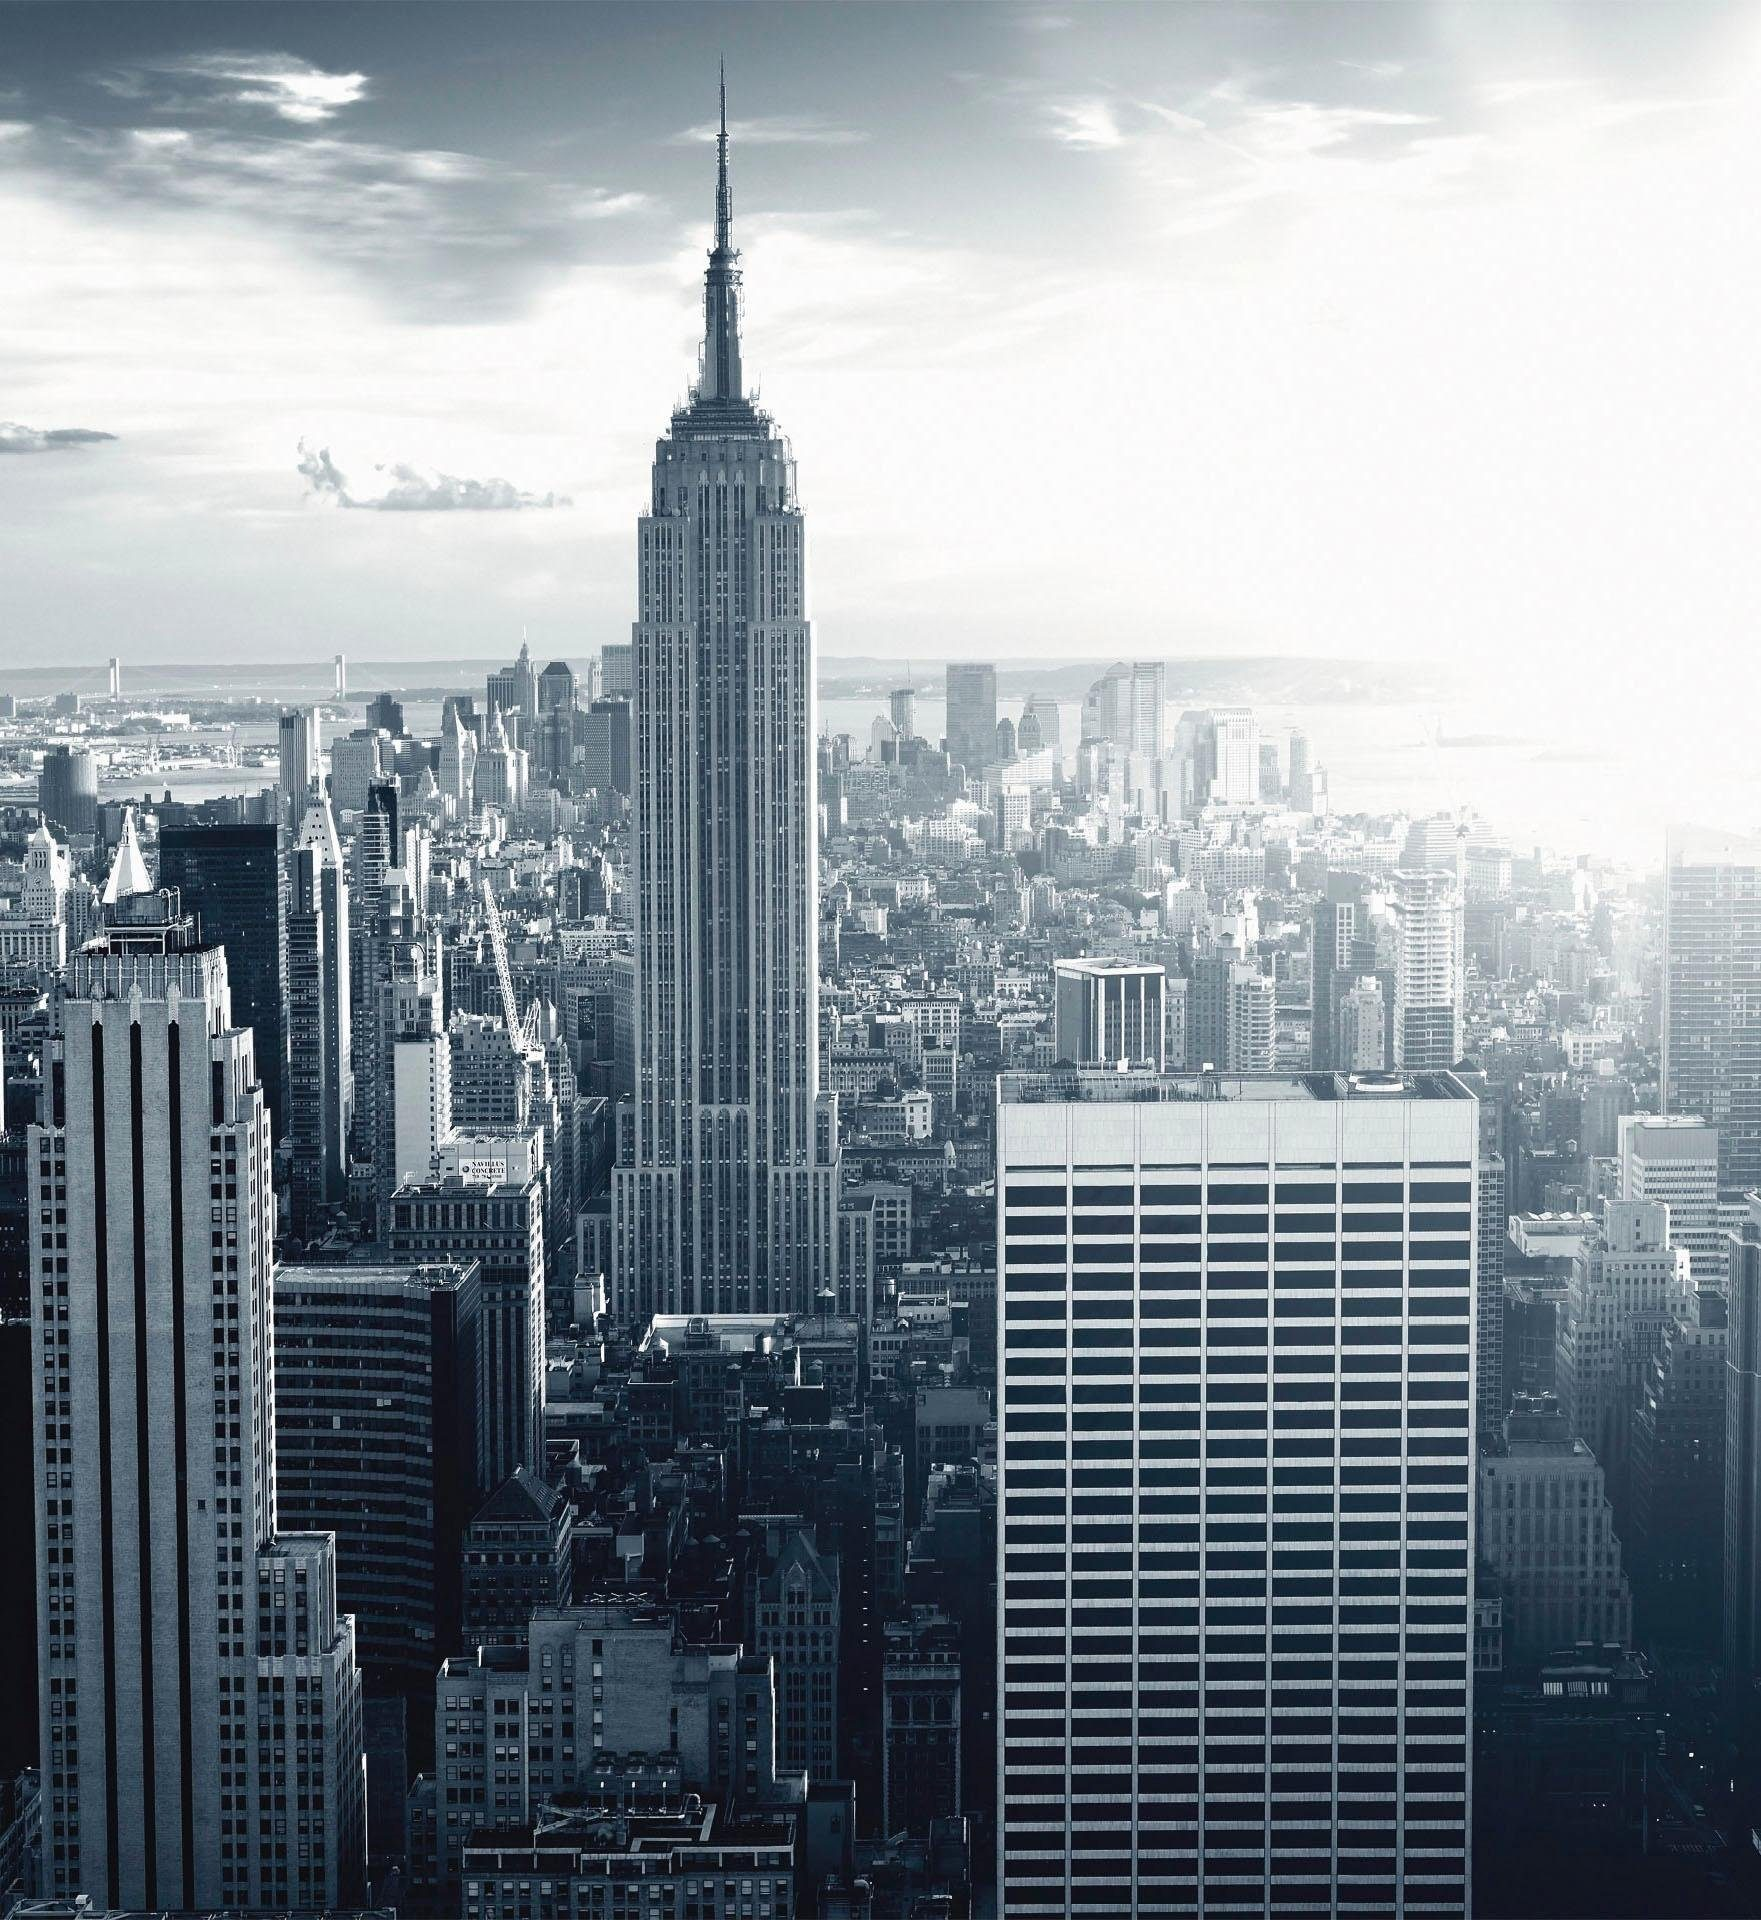 Fototapete »The Empire State Building« 240/260 cm